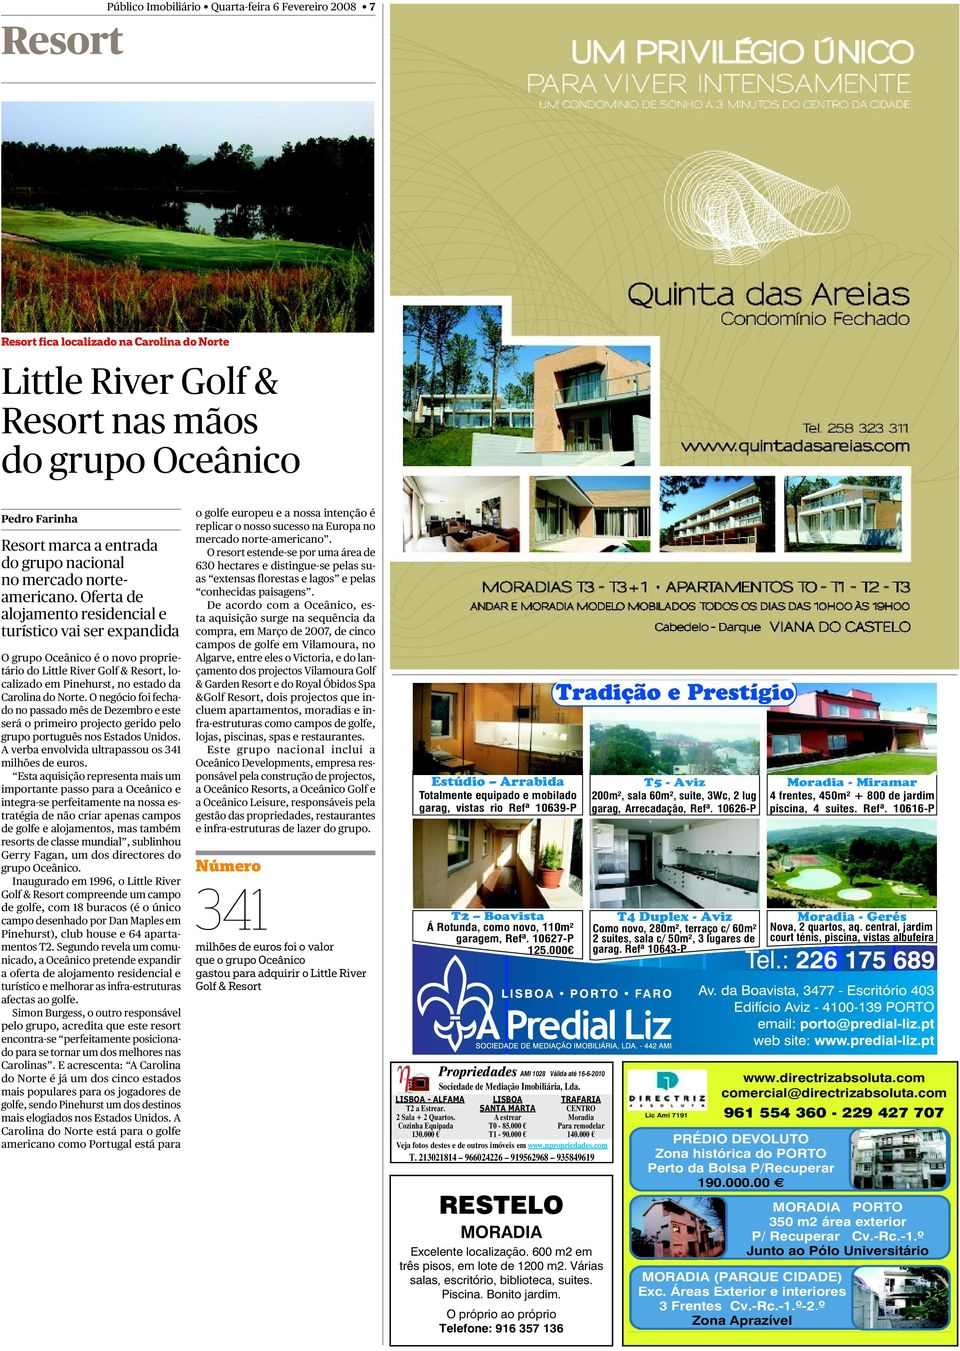 Oferta de alojamento residencial e turístico vai ser expandida O grupo Oceânico é o novo proprietário do Little River Golf & Resort, localizado em Pinehurst, no estado da Carolina do Norte.